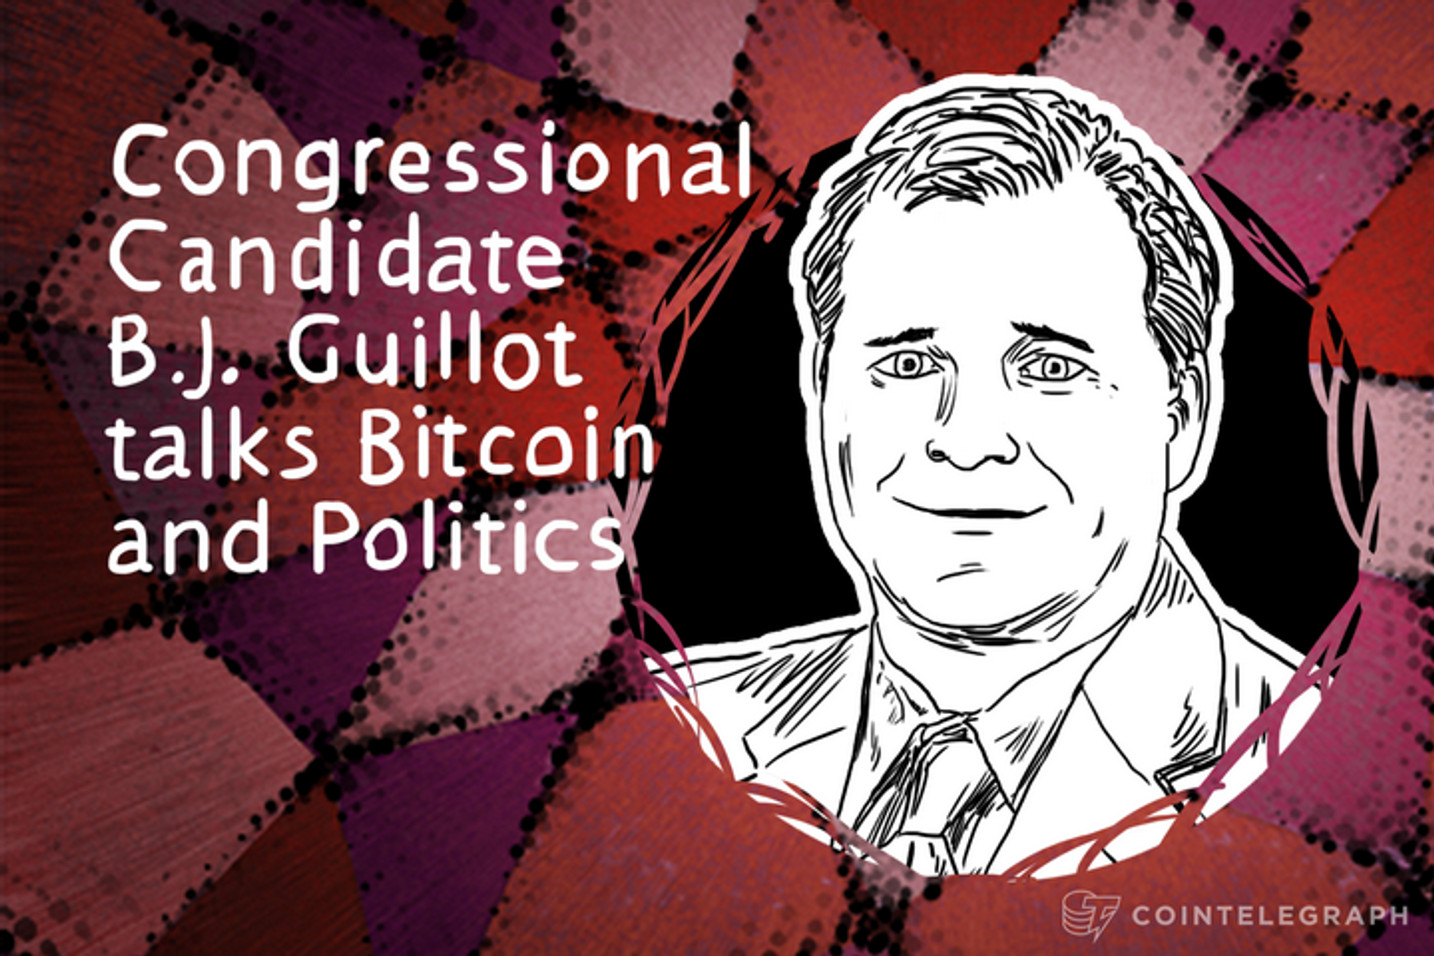 Congressional Candidate B.J. Guillot talks Bitcoin and Politics - Interview